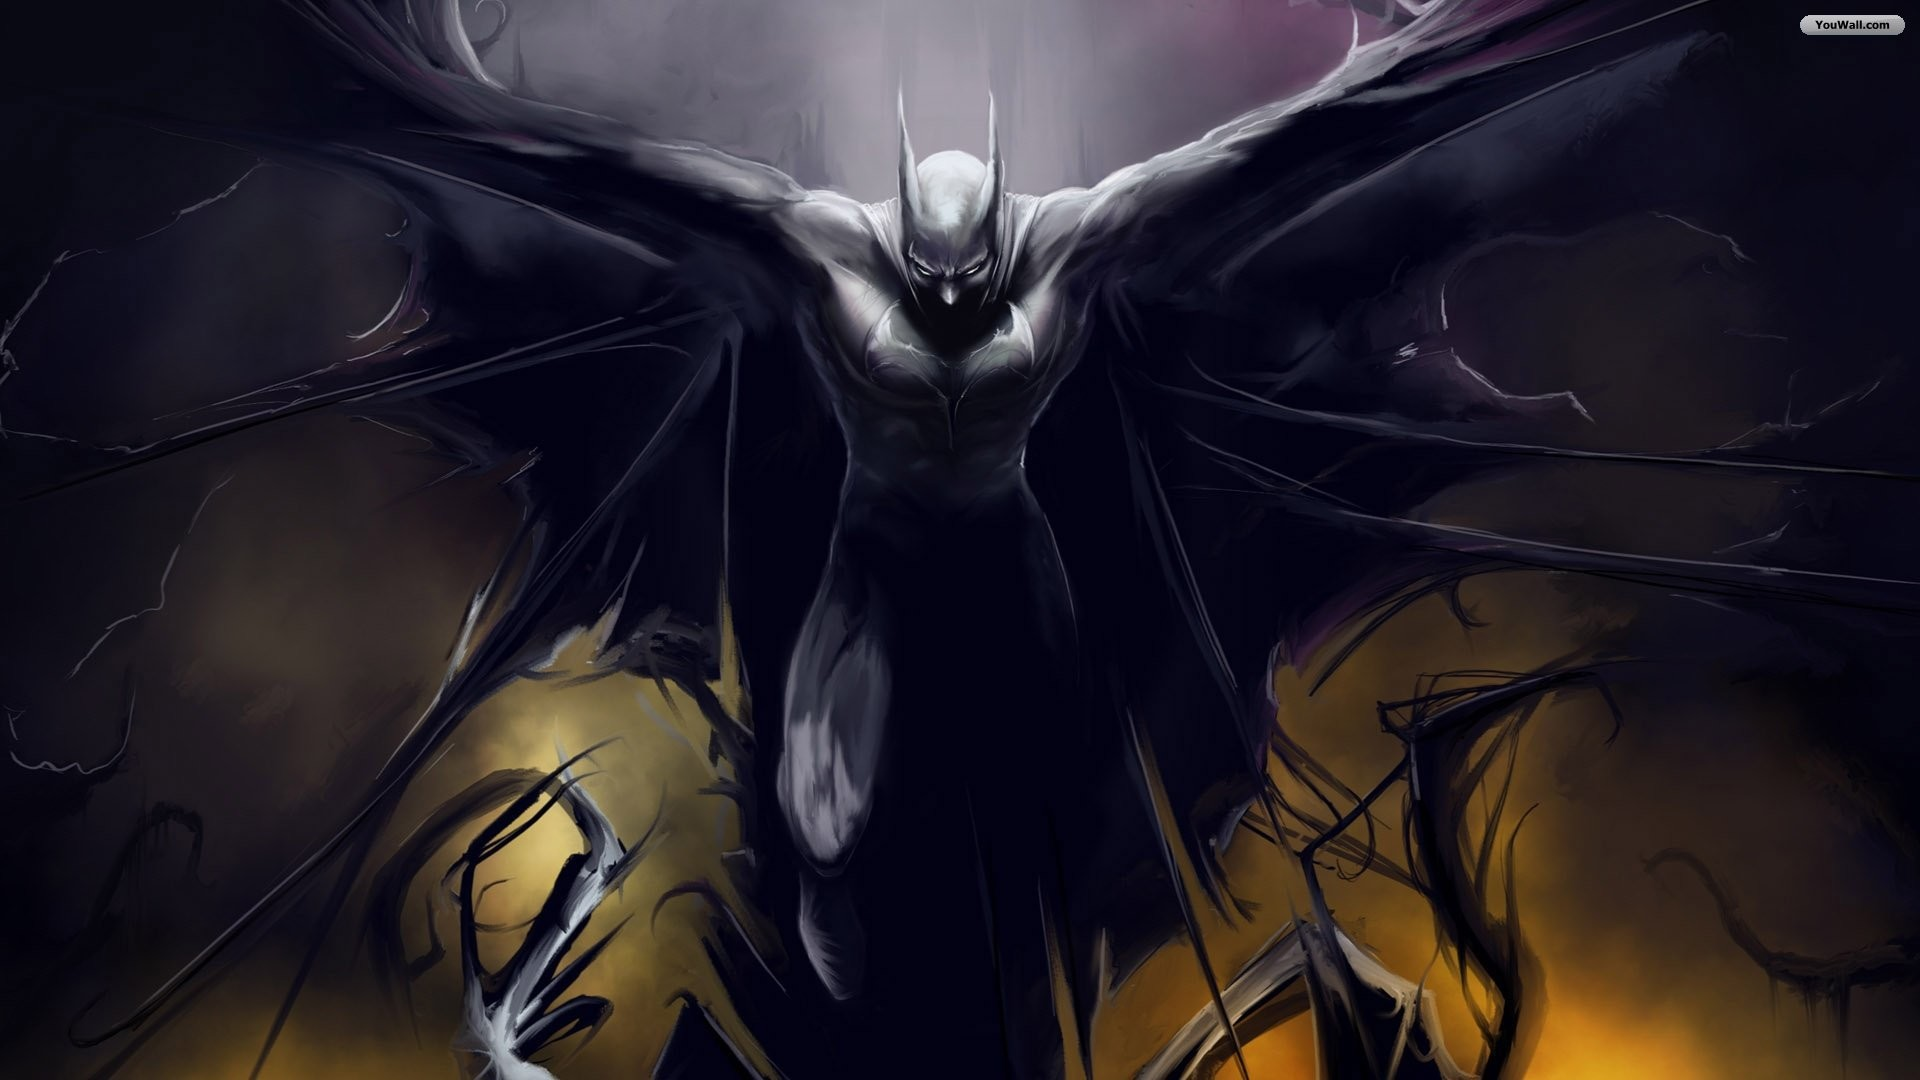 1920x1080 Batman desktop wallpapers | Batman wallpapers